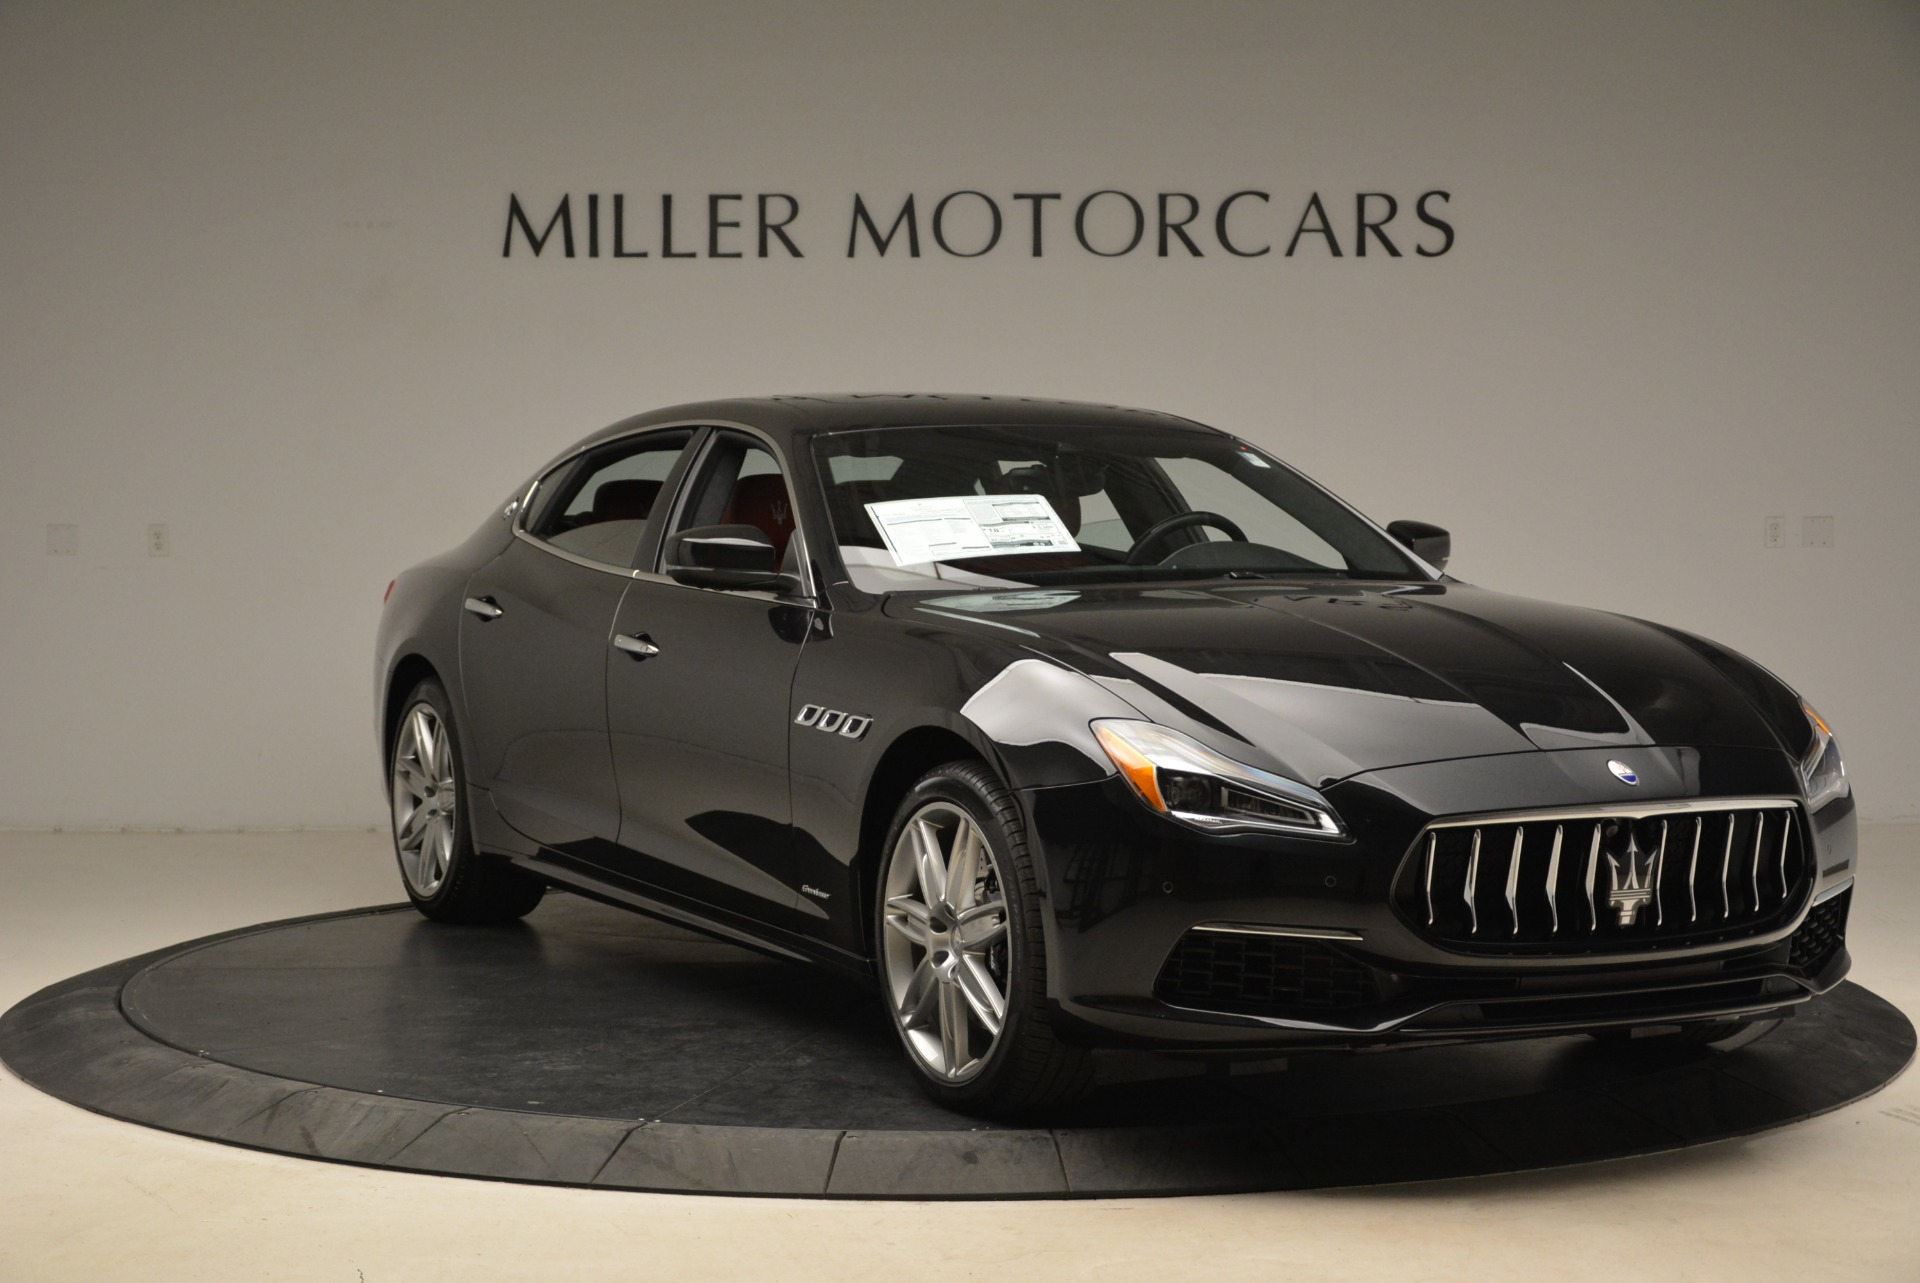 New 2018 Maserati Quattroporte S Q4 GranLusso For Sale In Greenwich, CT. Alfa Romeo of Greenwich, M2176 2391_p11